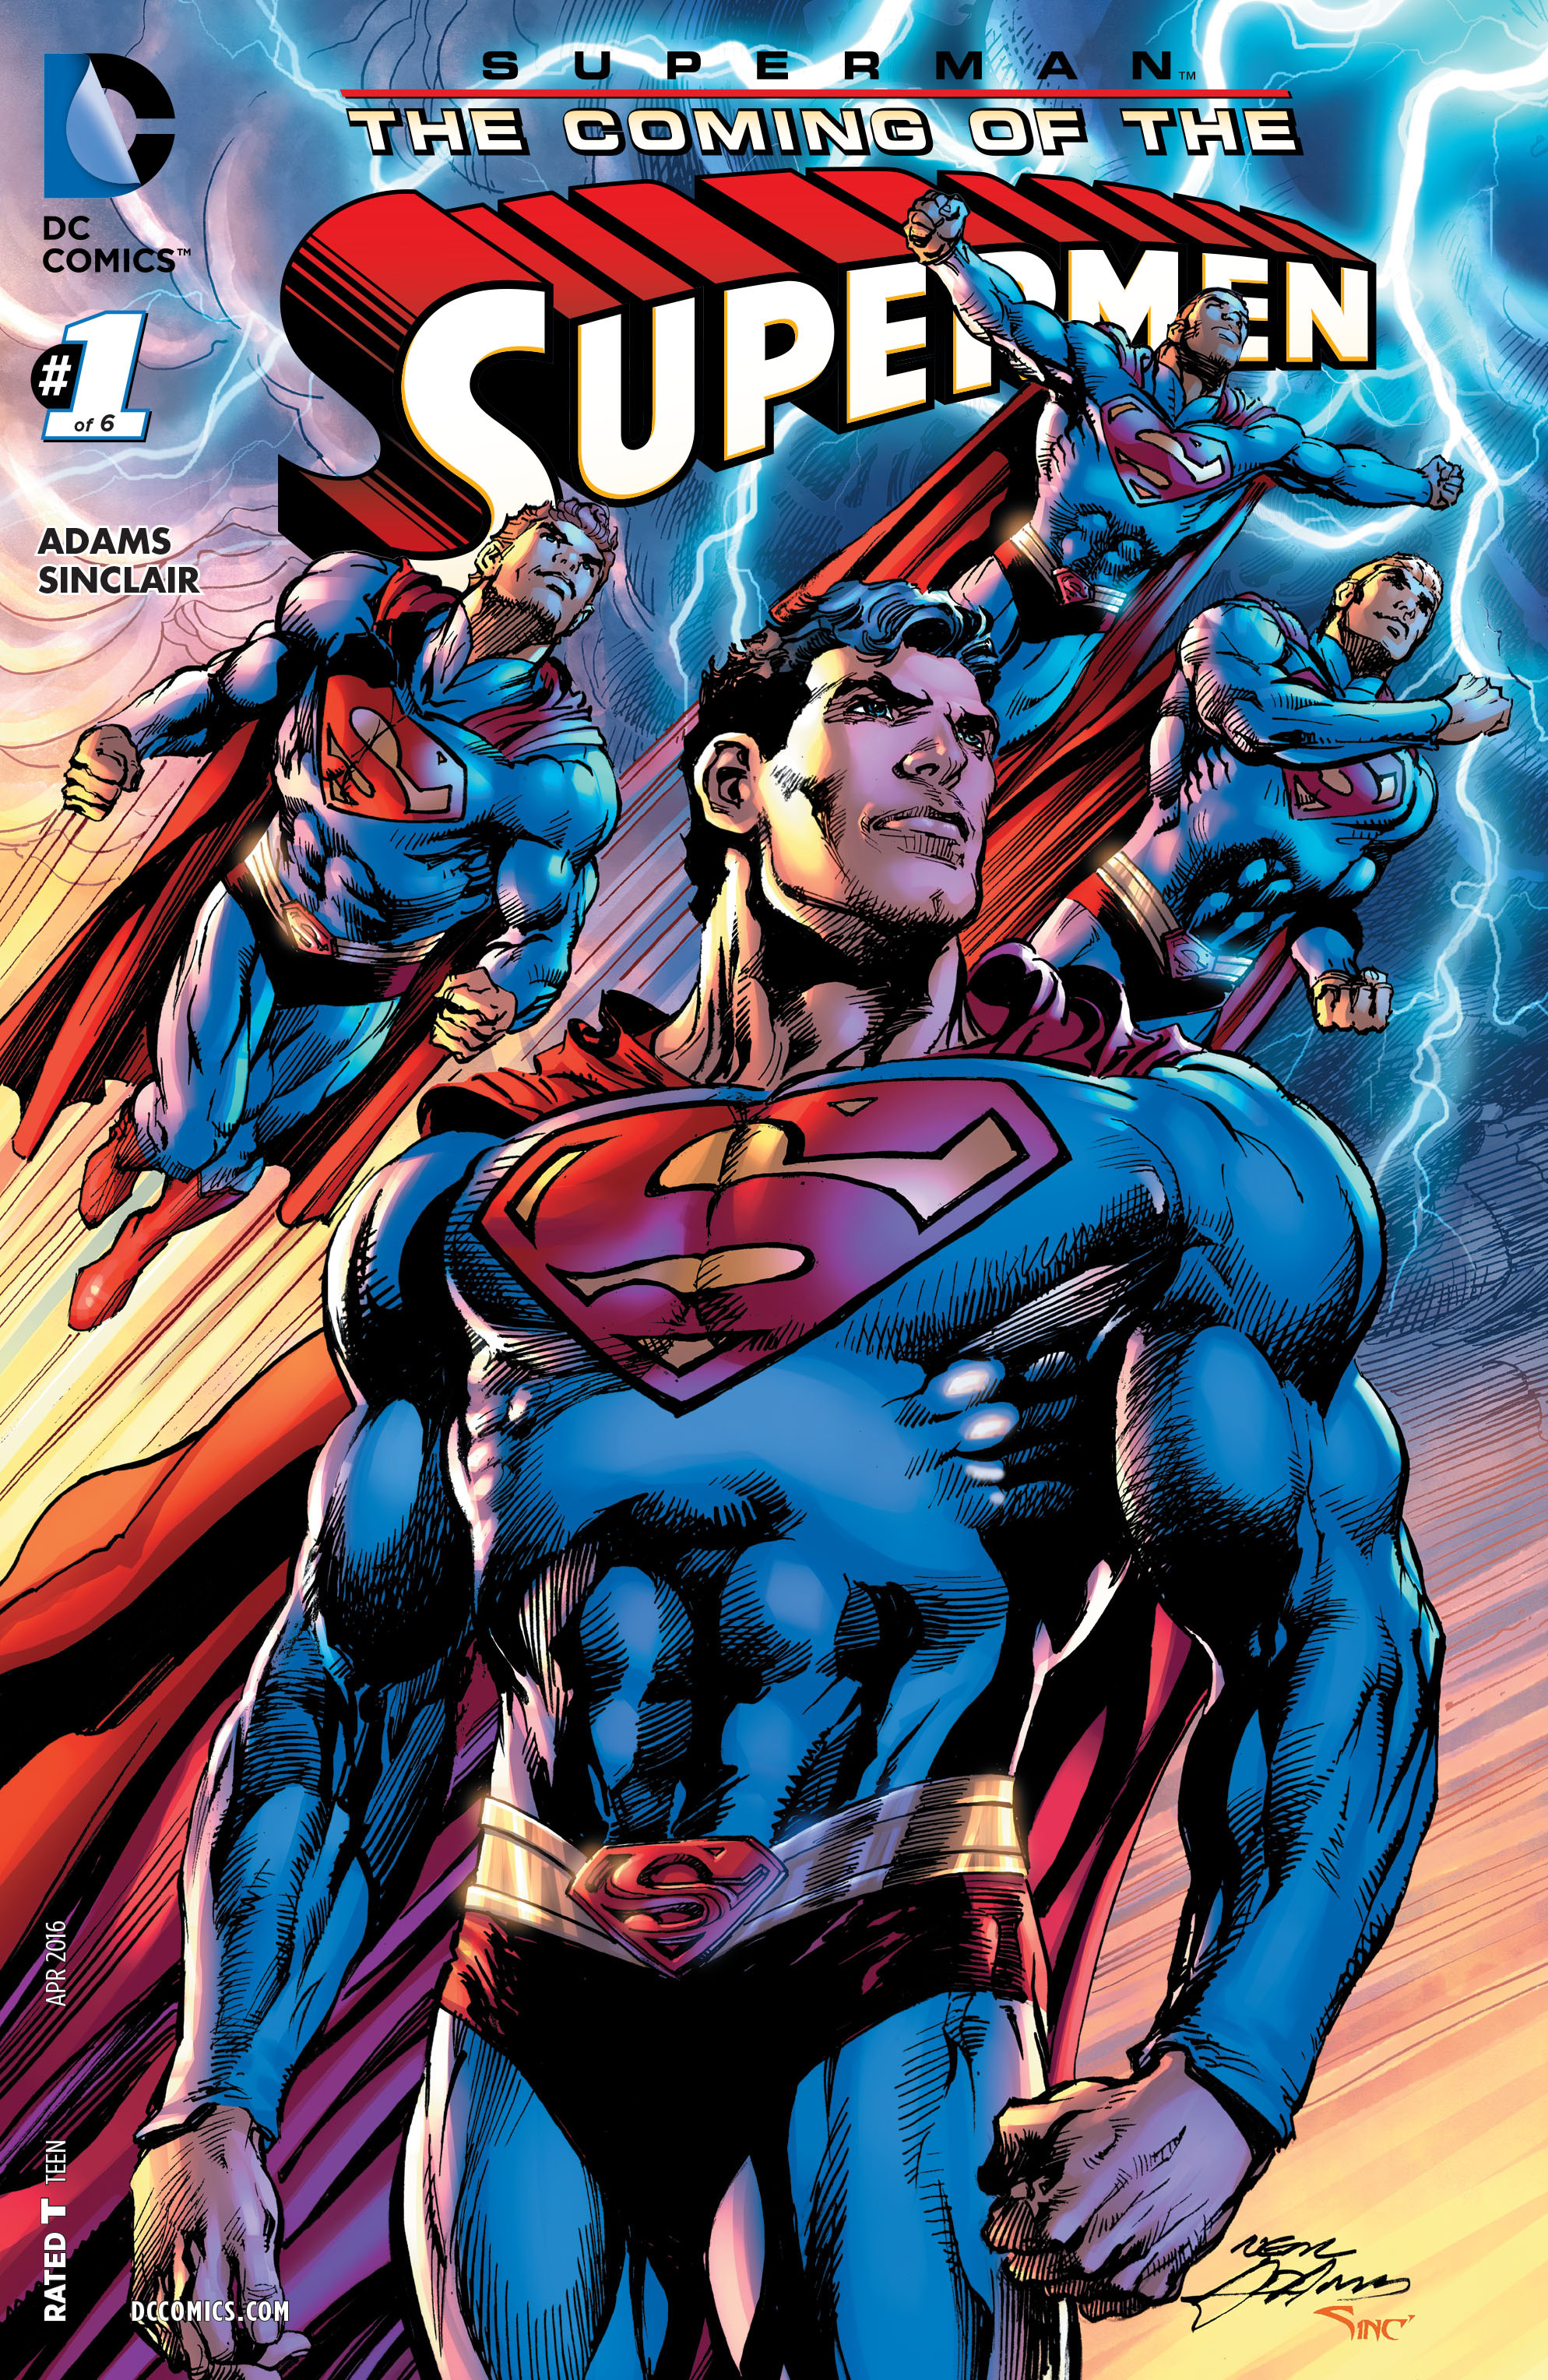 SUPERMAN: COMING OF THE SUPERMEN #1 cover